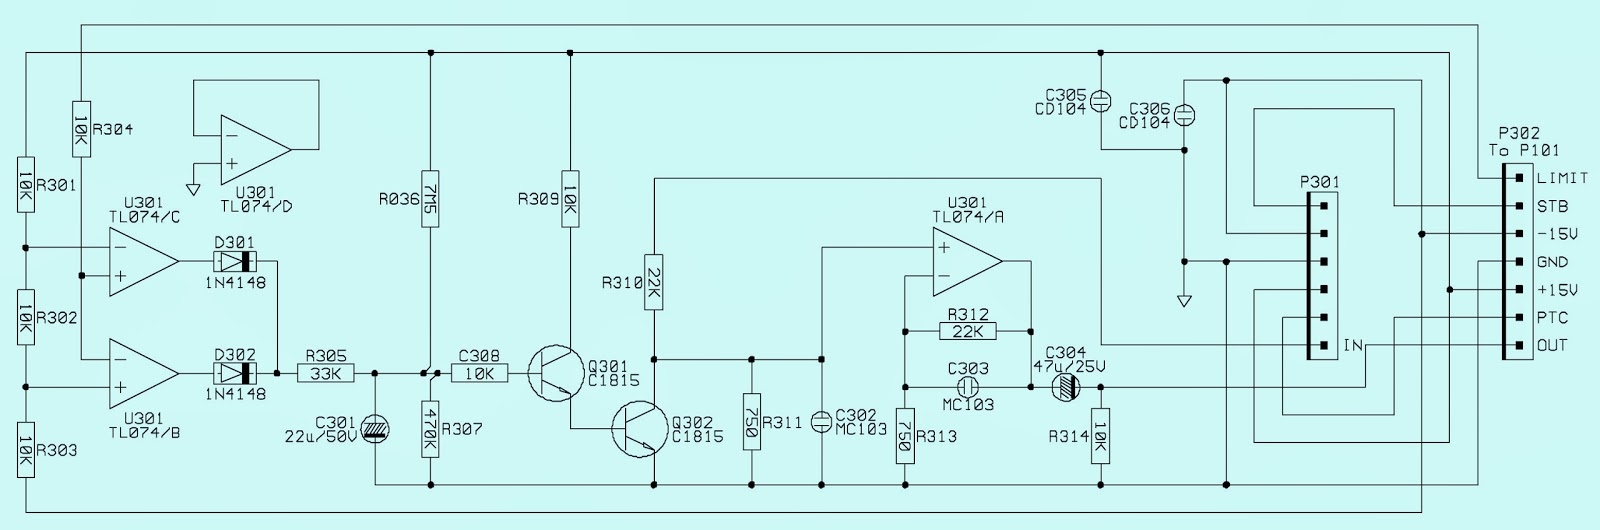 small resolution of jbl sub 135s cinema propack 600 amp subwoofer schematic cinema propack600 ampsubwoofer schematic circuit diagram